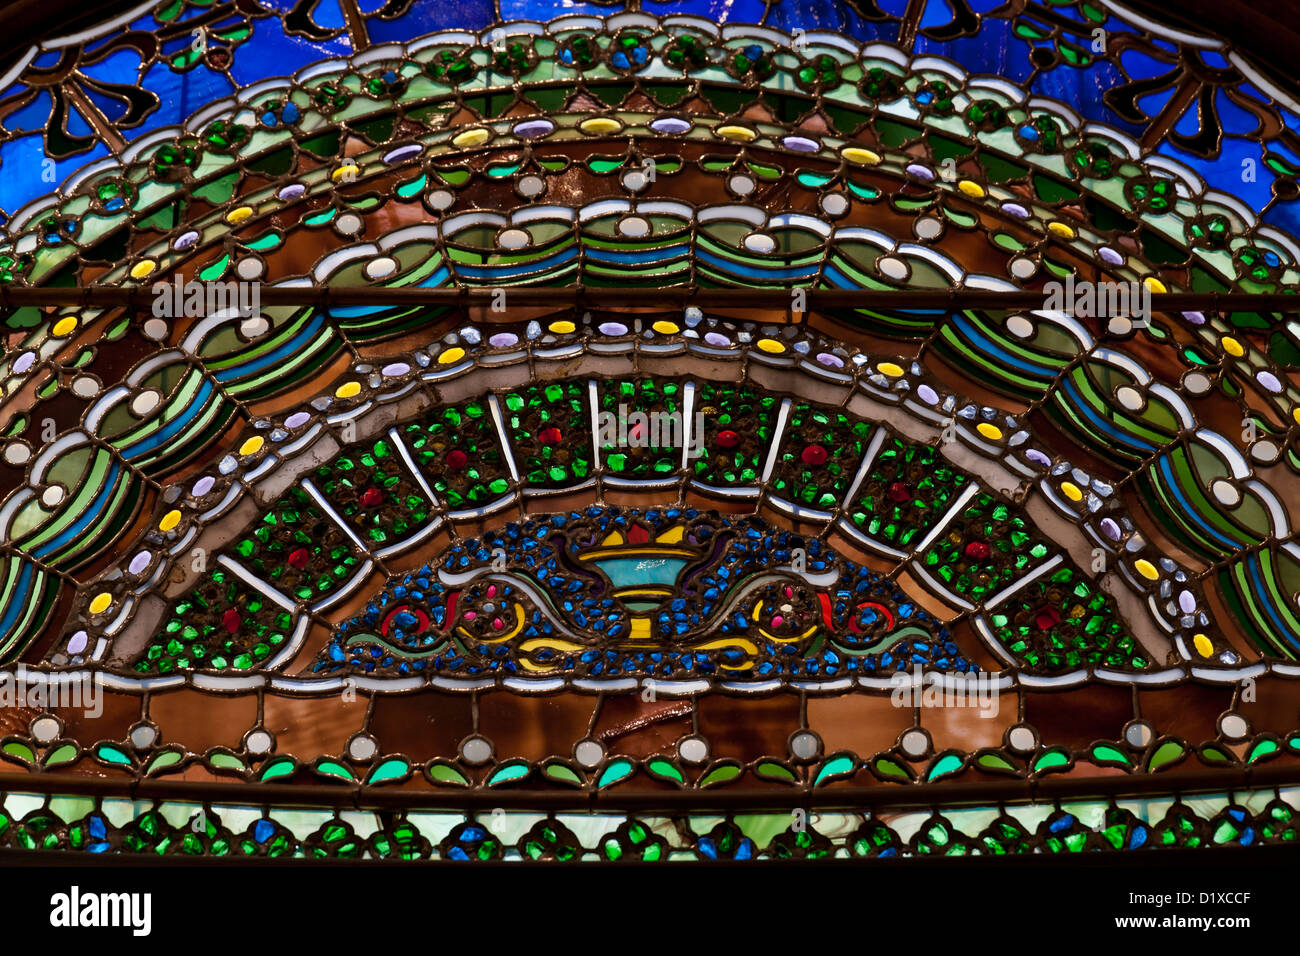 Detailed stained glass work - Stock Image